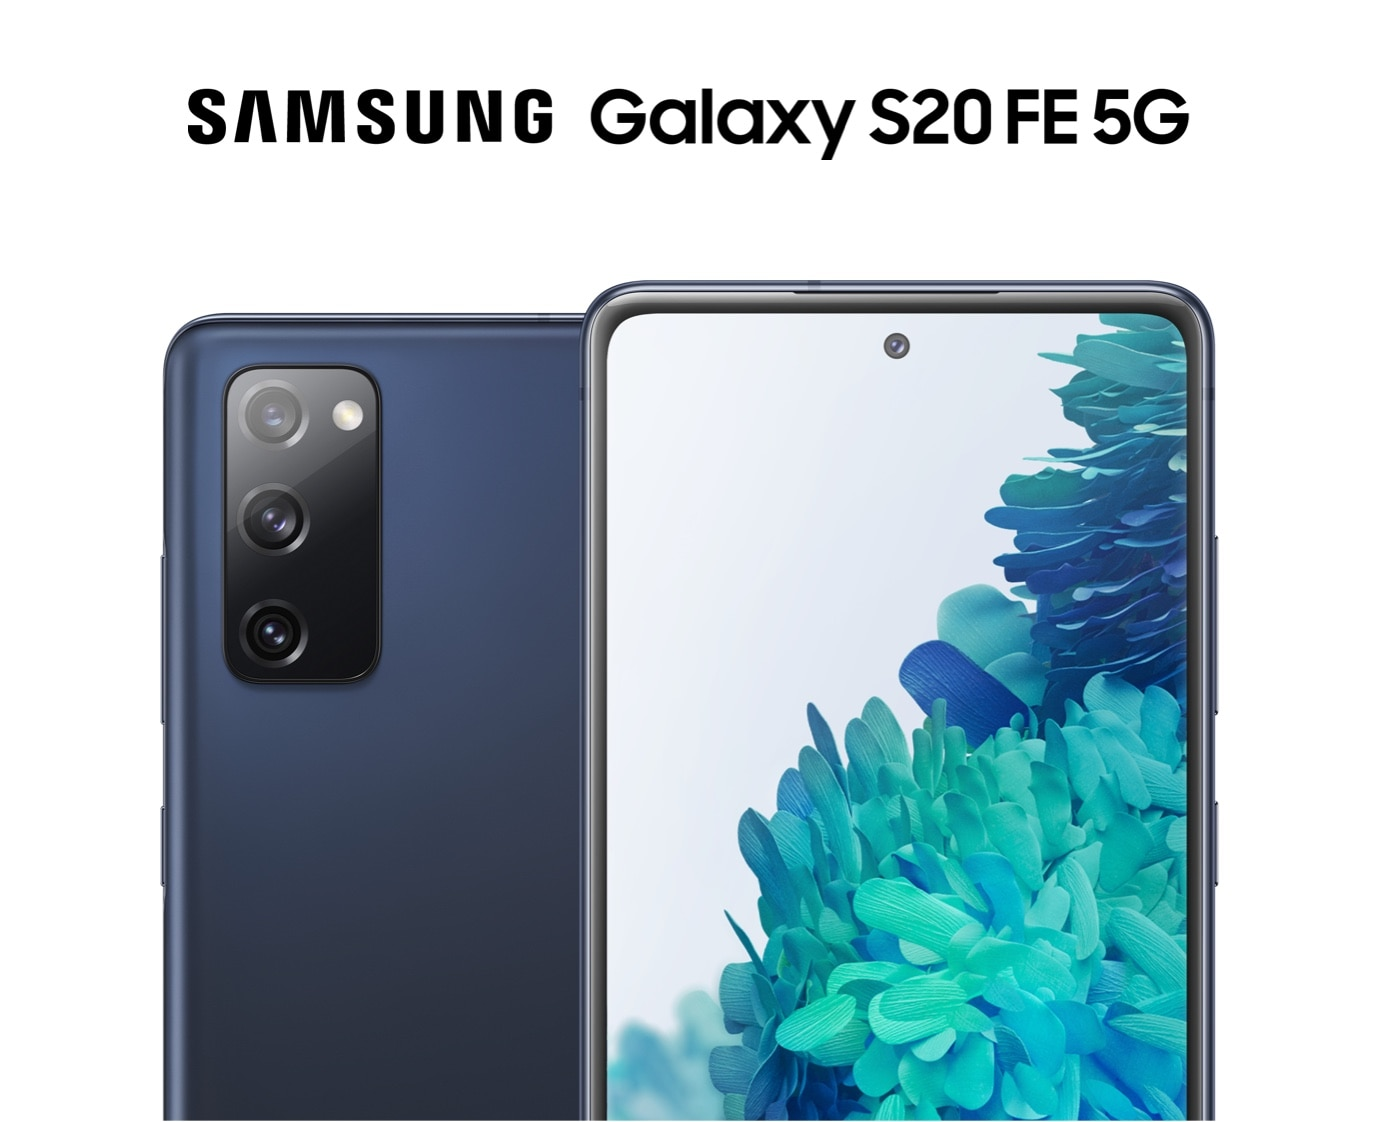 Samsung Galaxy S20 Fe 5g 128 Gb Metro By T Mobile